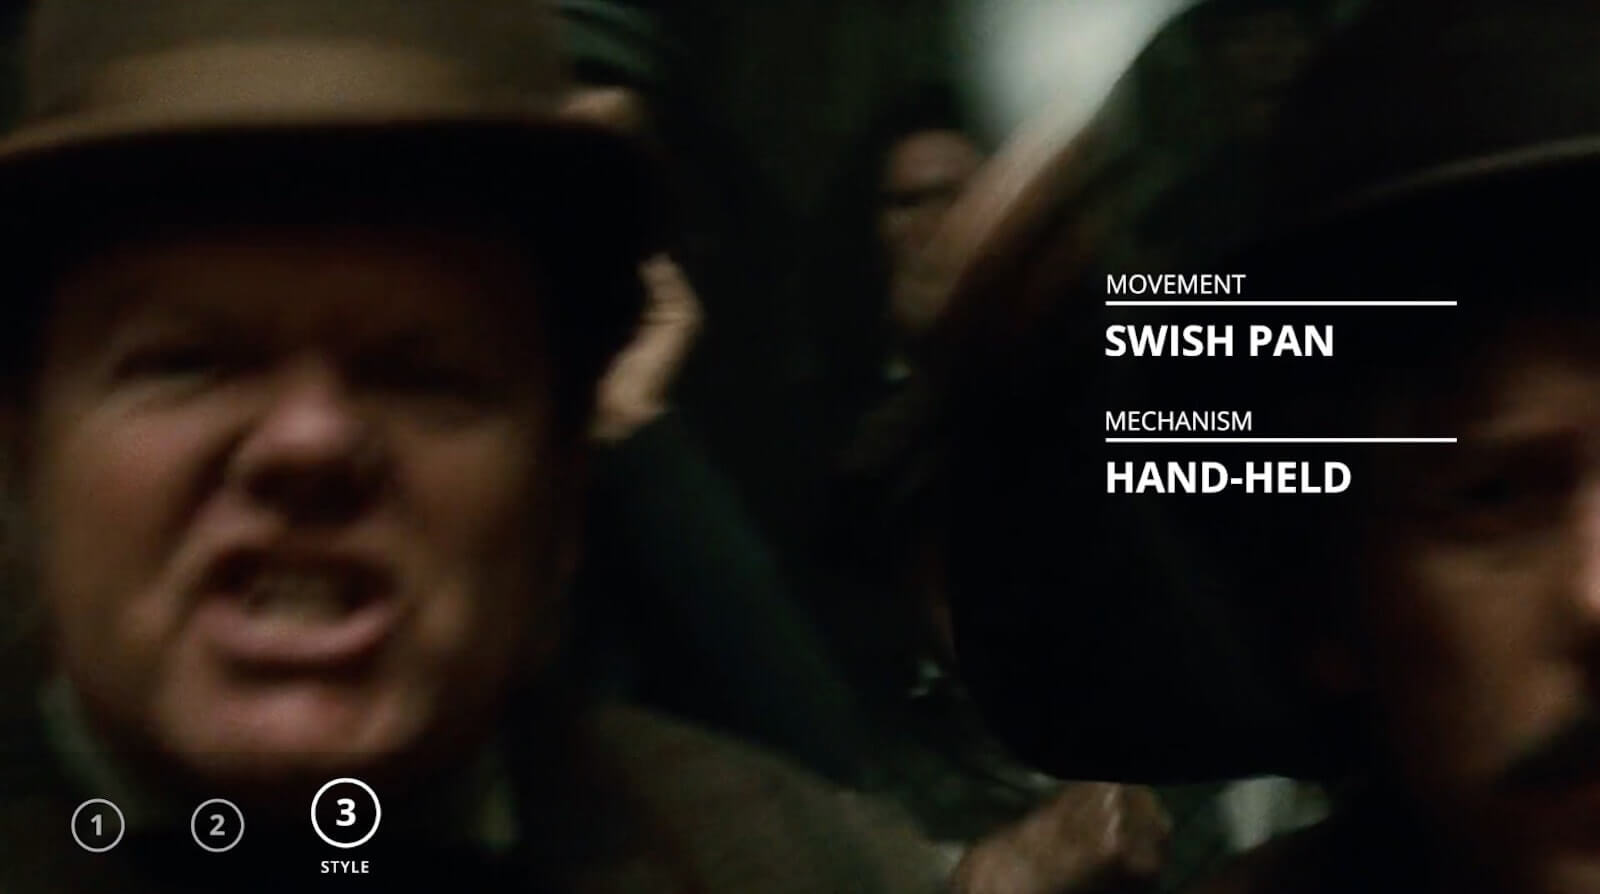 Sherlock Holmes fight scene - Fight Choreography - Camera movements